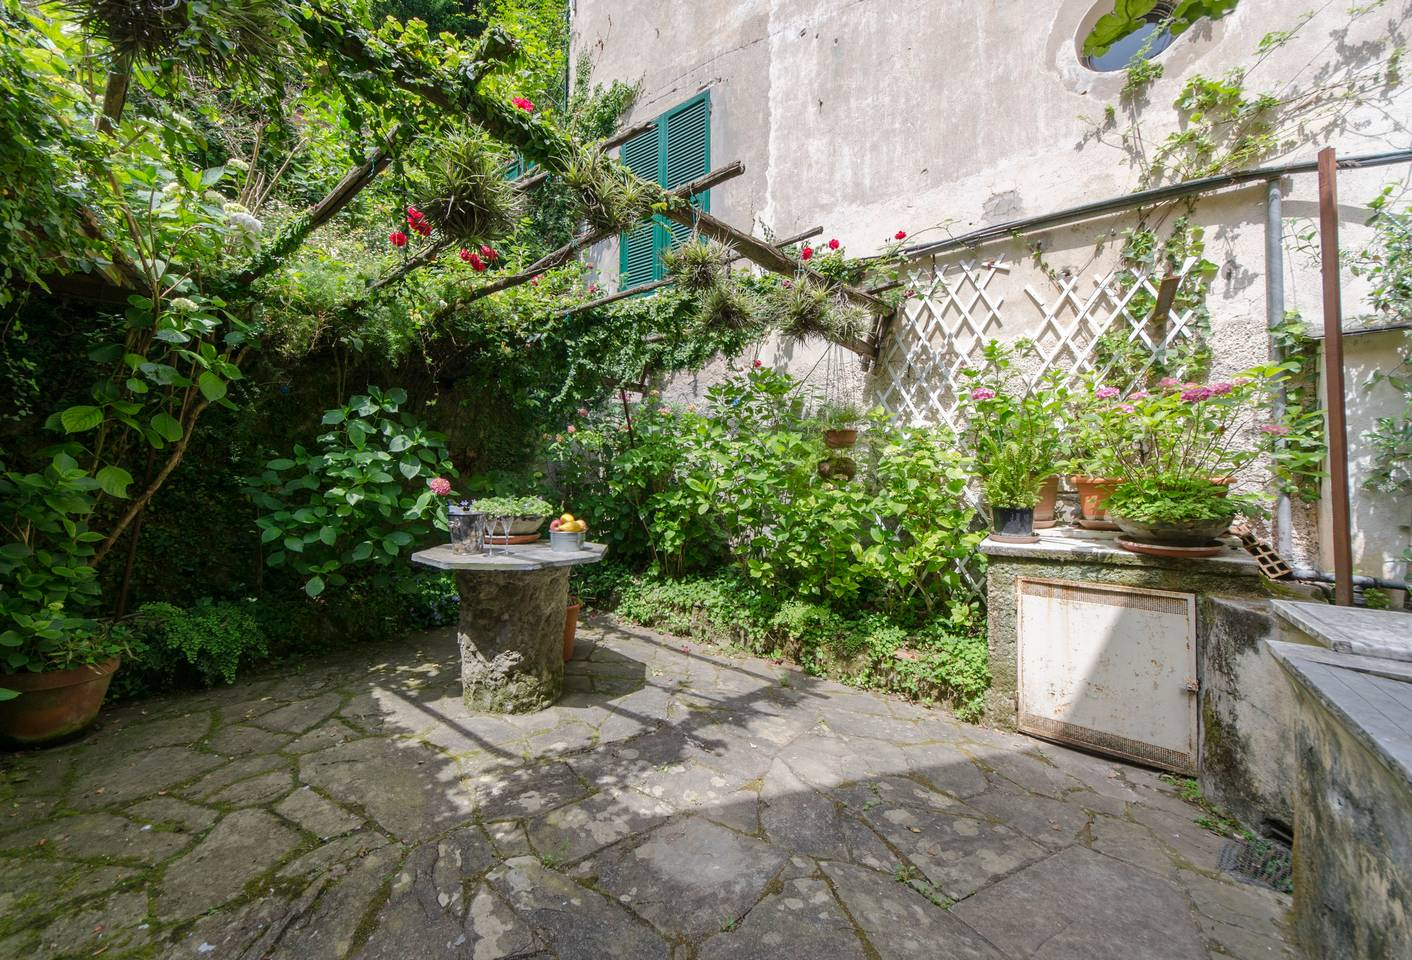 Apartment Hintown  La Finestra sulla Piazzetta a Portofino photo 18424606